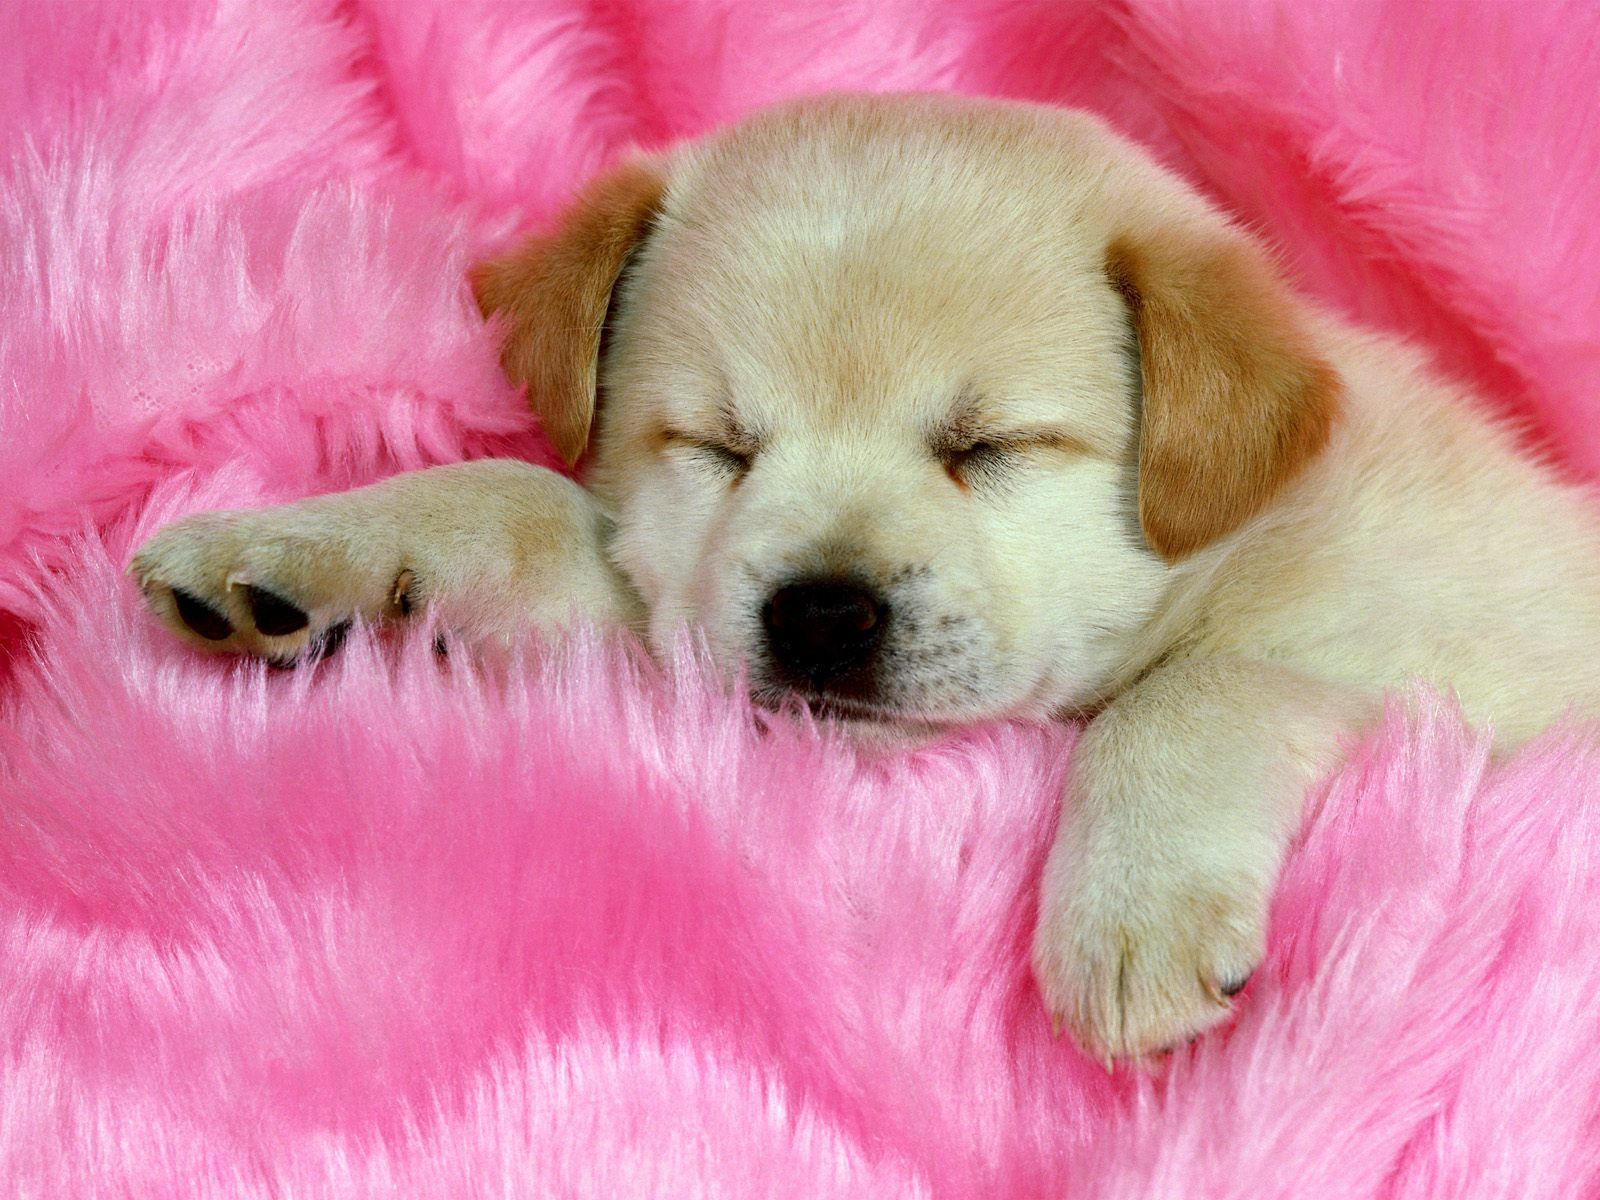 Little Dogs Wallpapers 06 Top Free Little Dogs Images For Laptop Cute Puppy Wallpaper Dog Background Puppy Wallpaper